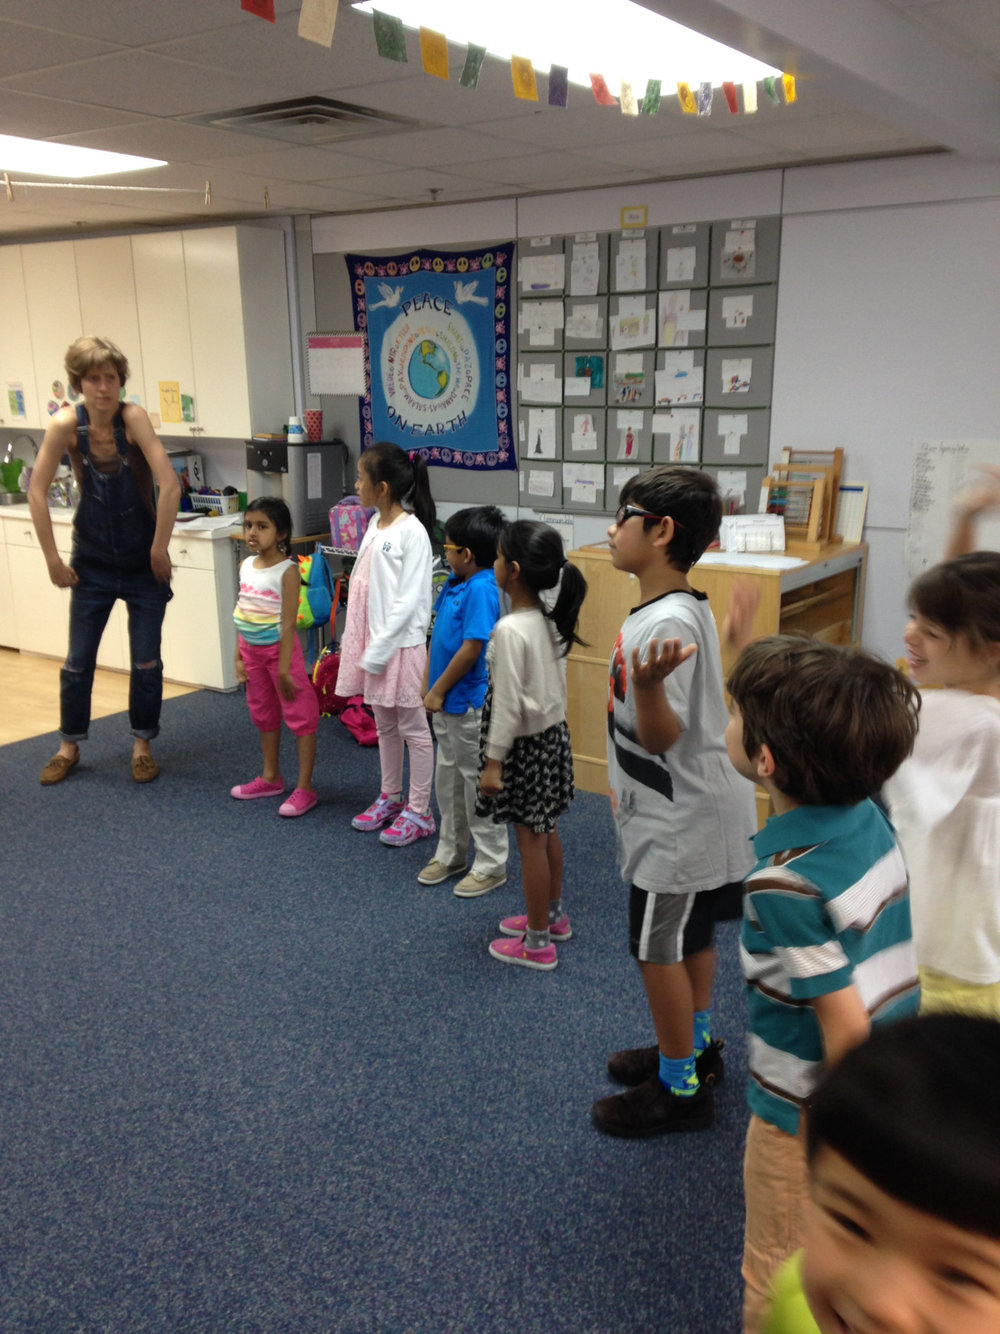 Ms. Elisabeth's sister, Kathleen, visited the Lower Elementary West class to share a special theater workshop.  The students were thrilled to have a visit from a professional actor.